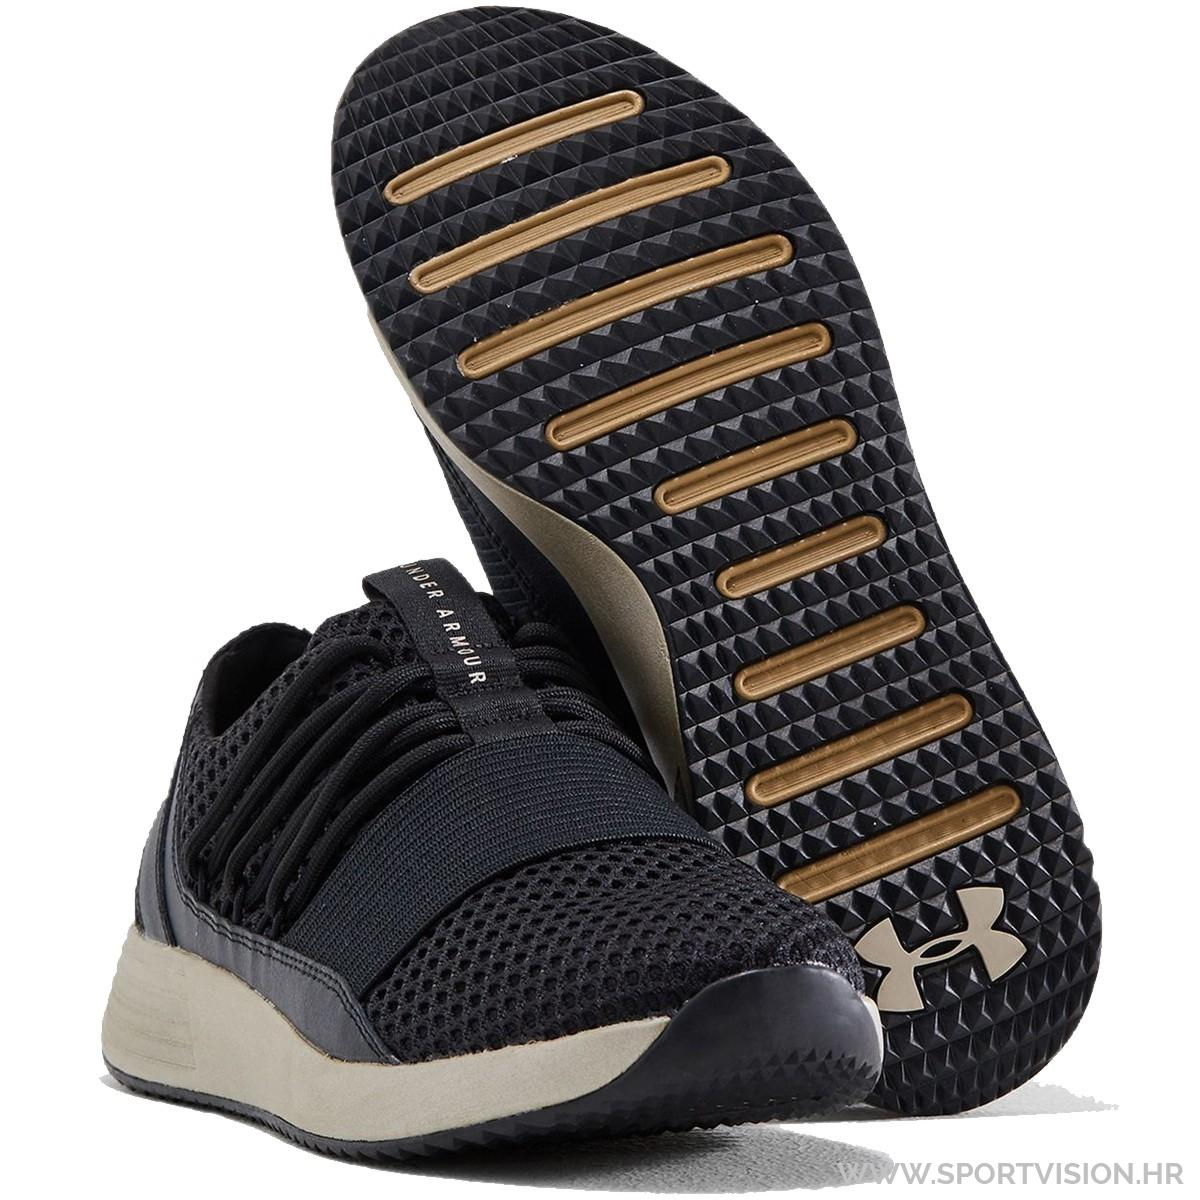 UNDER ARMOUR tenisice W BREATHE LACE X NM